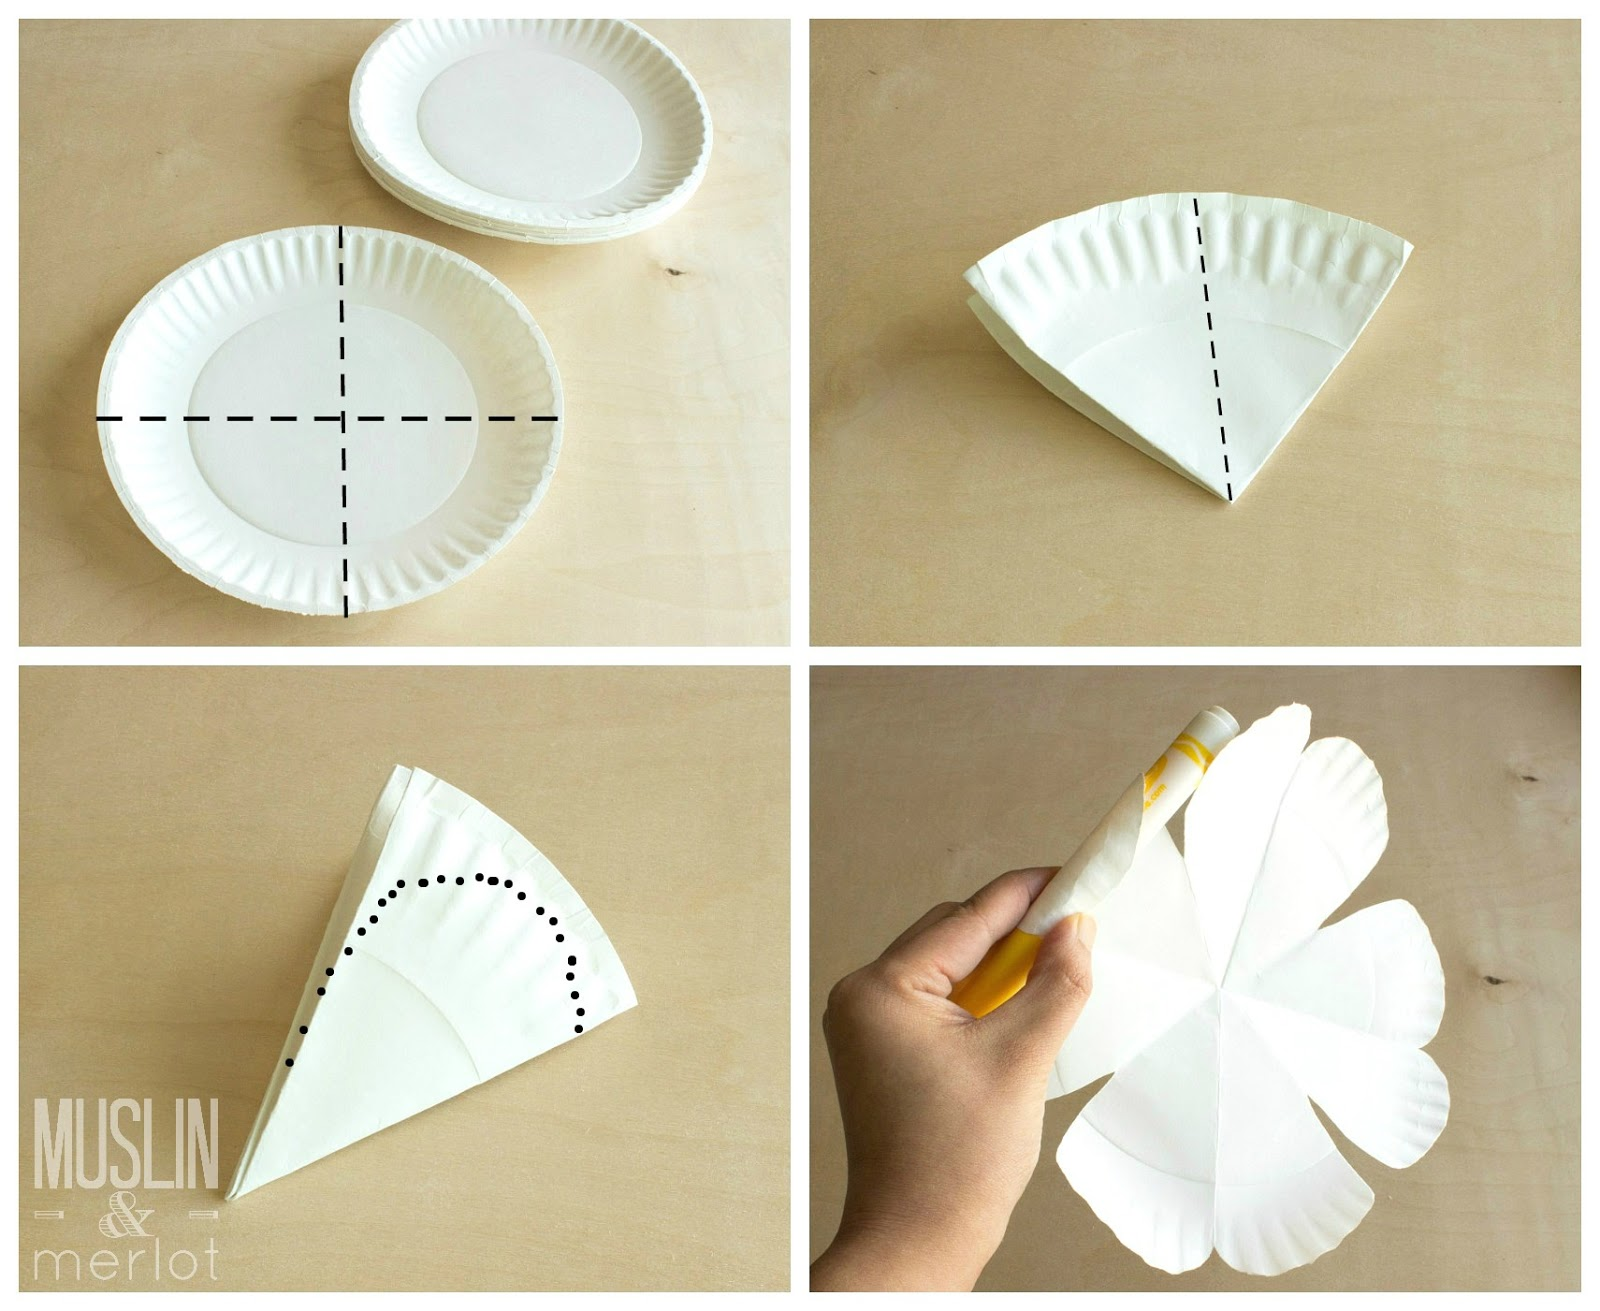 Paper plate flowers muslin and merlot paper plate flower tutorial izmirmasajfo Images